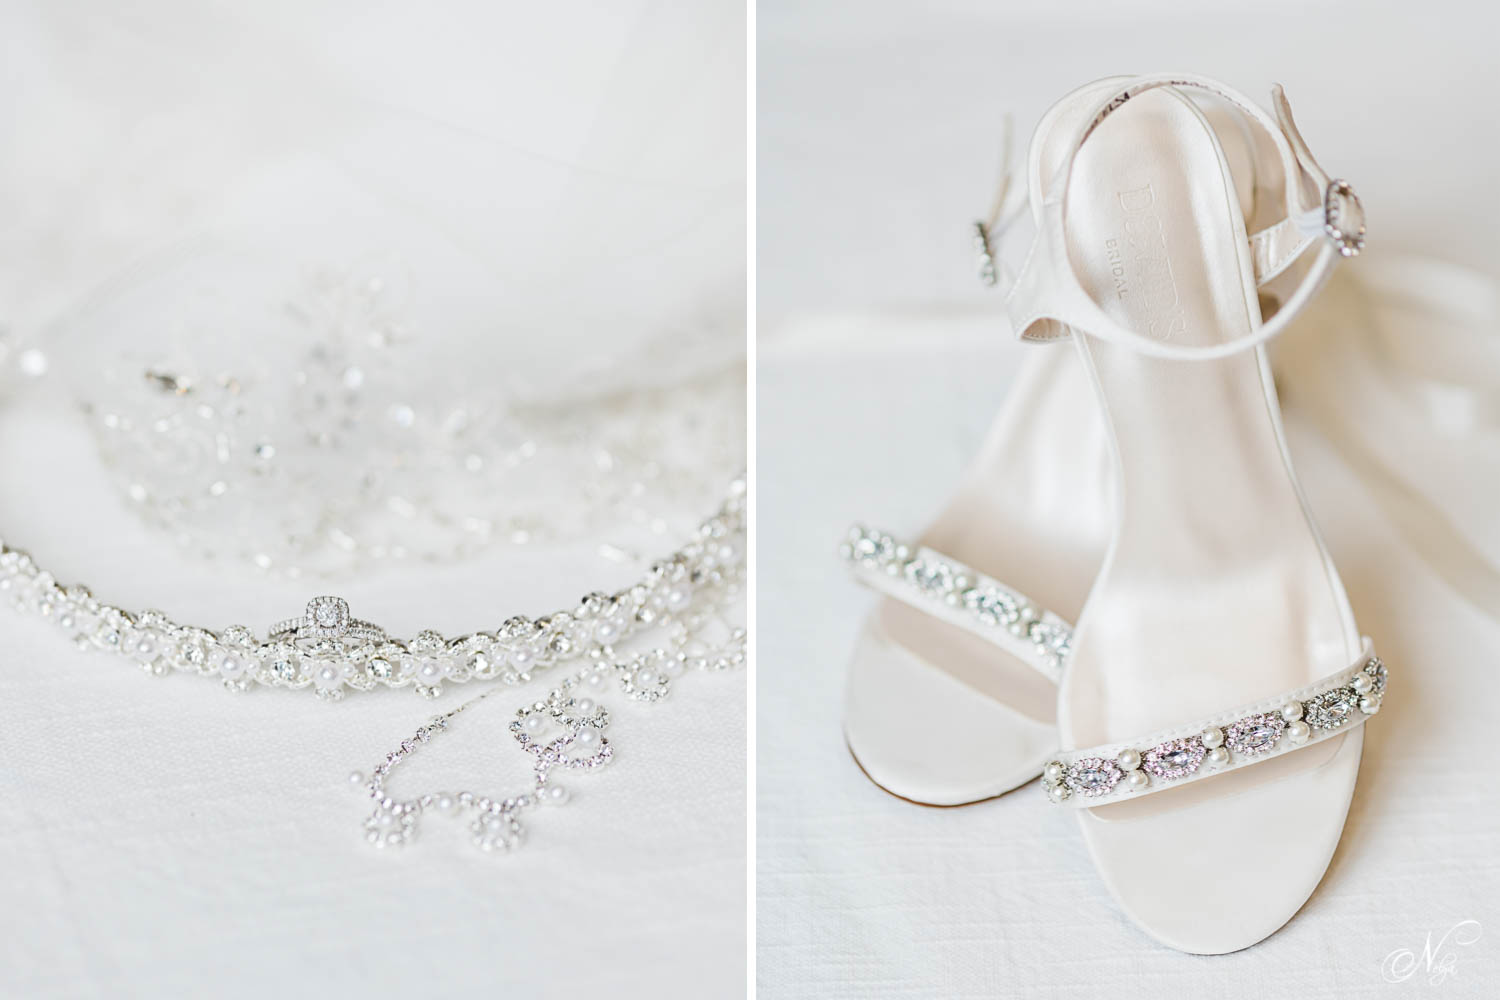 wedding details including headband and wedding rings on white background. And White David's bridal shoes